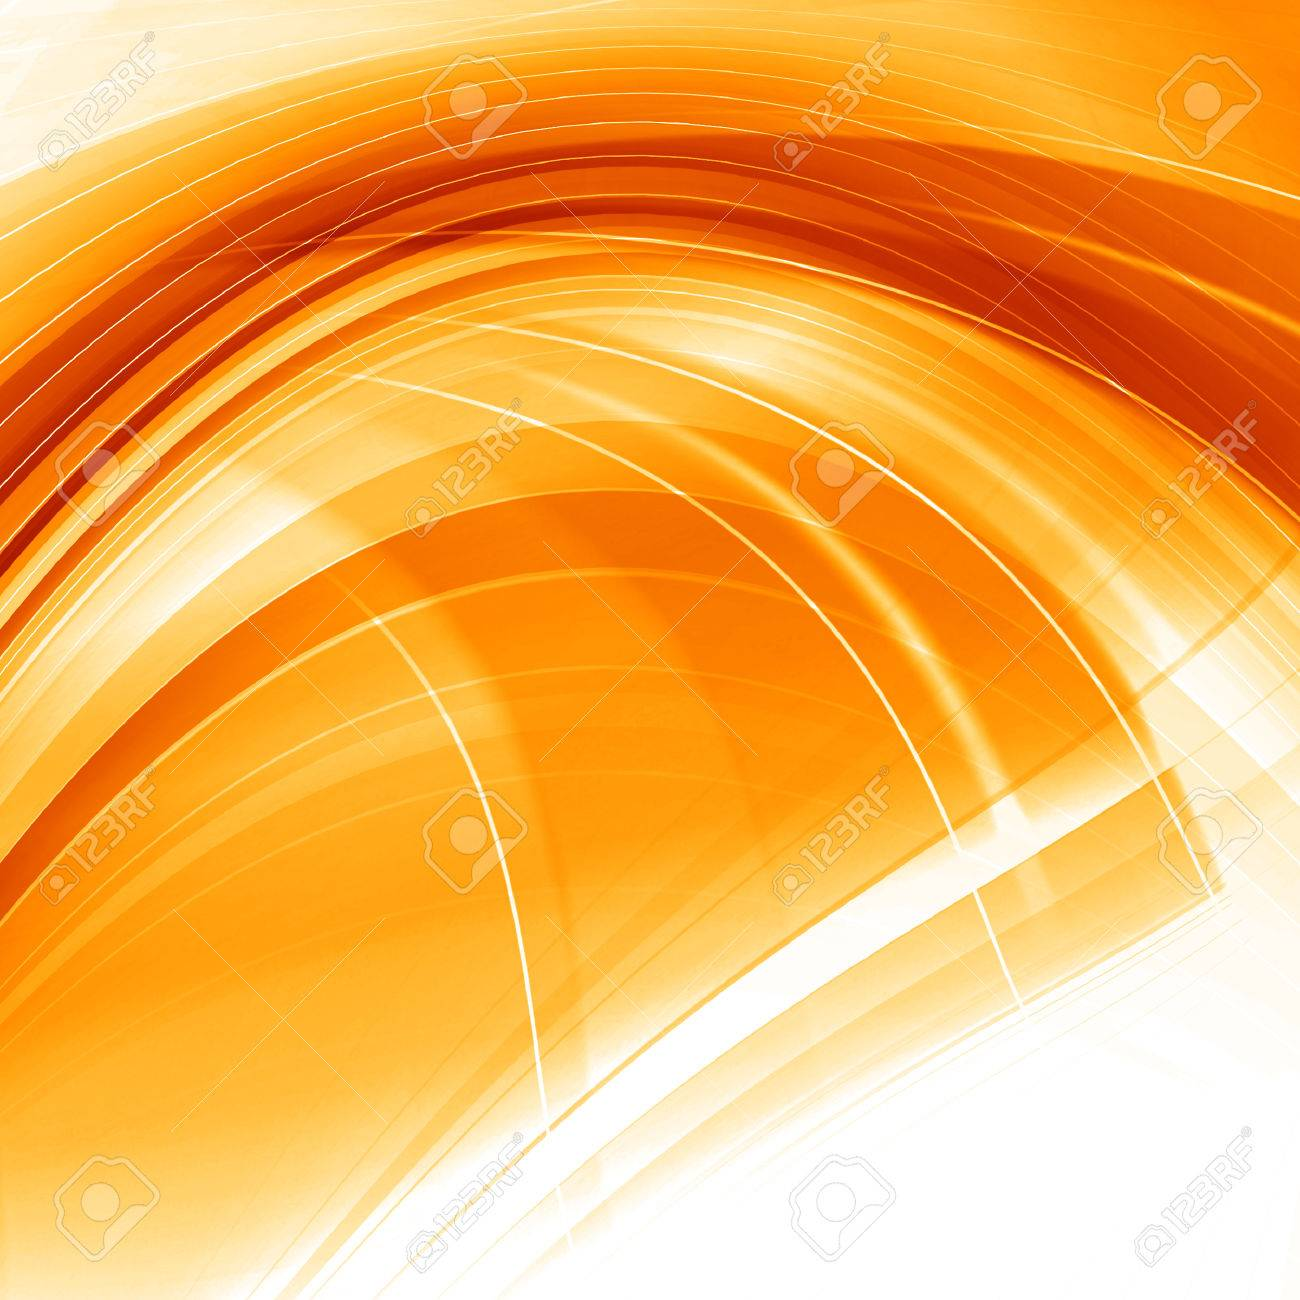 Orange Abstract Smooth Curves Lines Background Design - 37411866